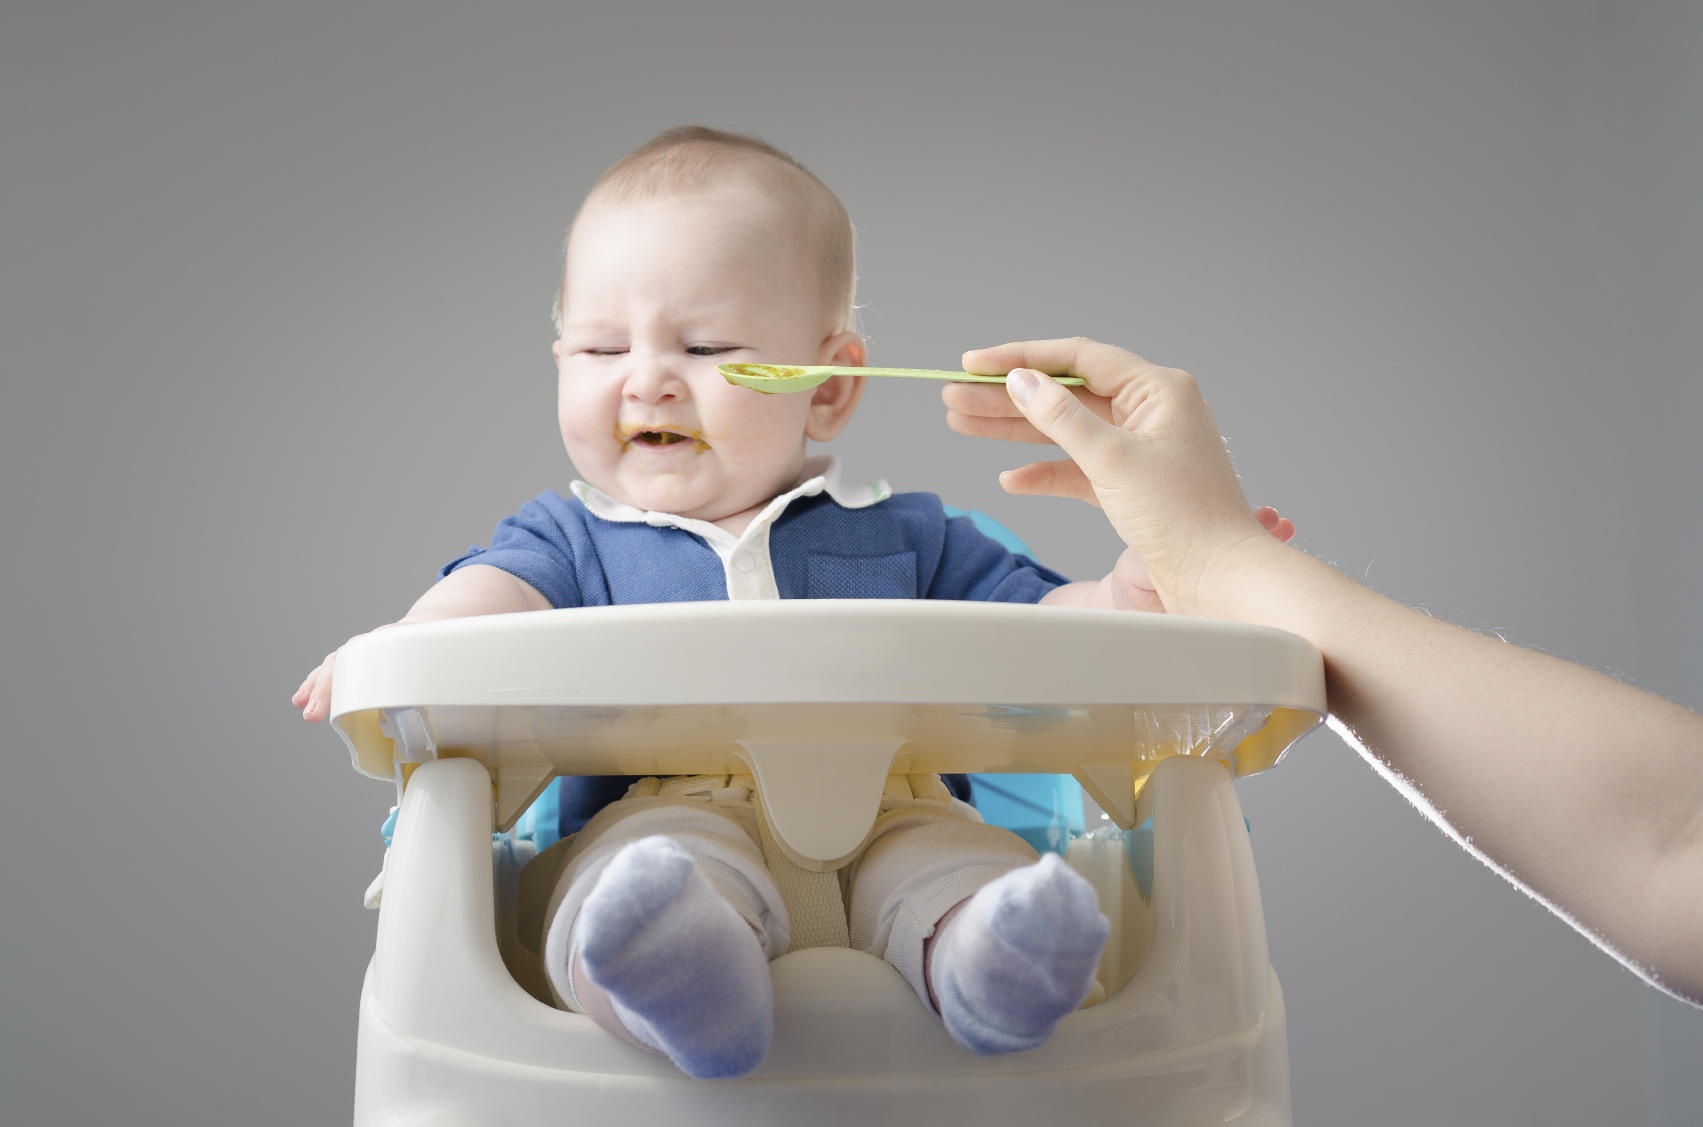 Baby refuses to eat, picky eater